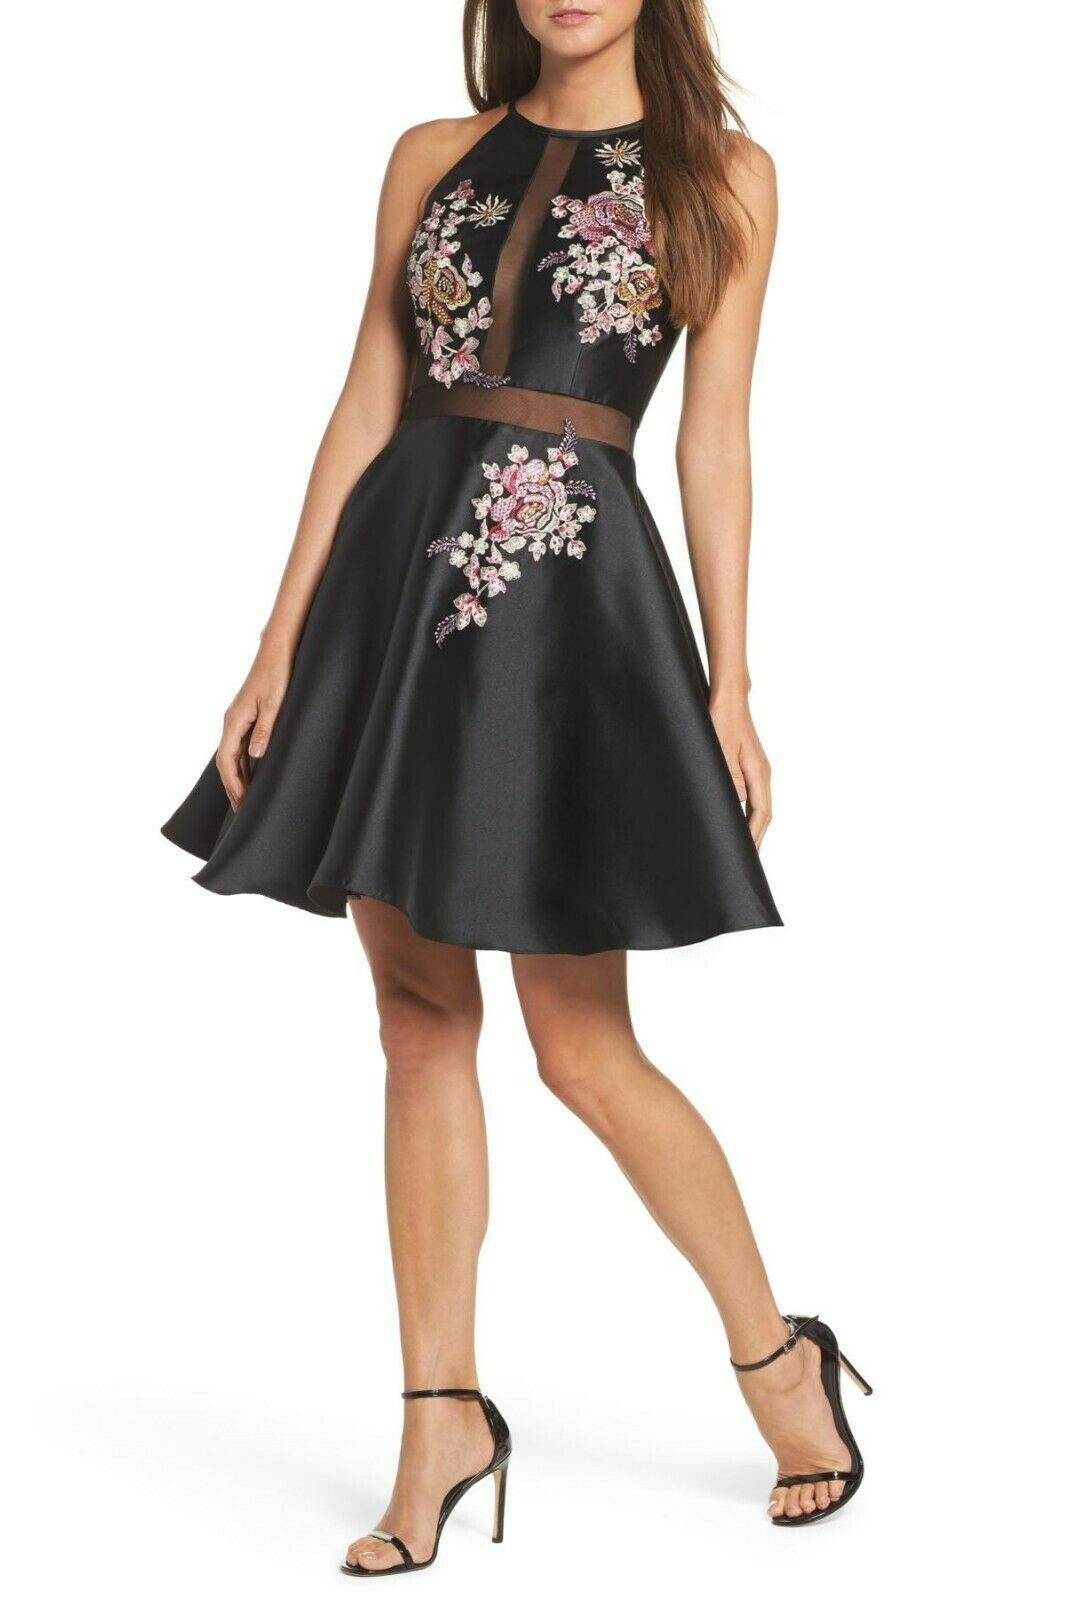 165223d971 XSCAPE Embroidered Party Dress MSRP Size 2 A 90 NEW Mikado ...